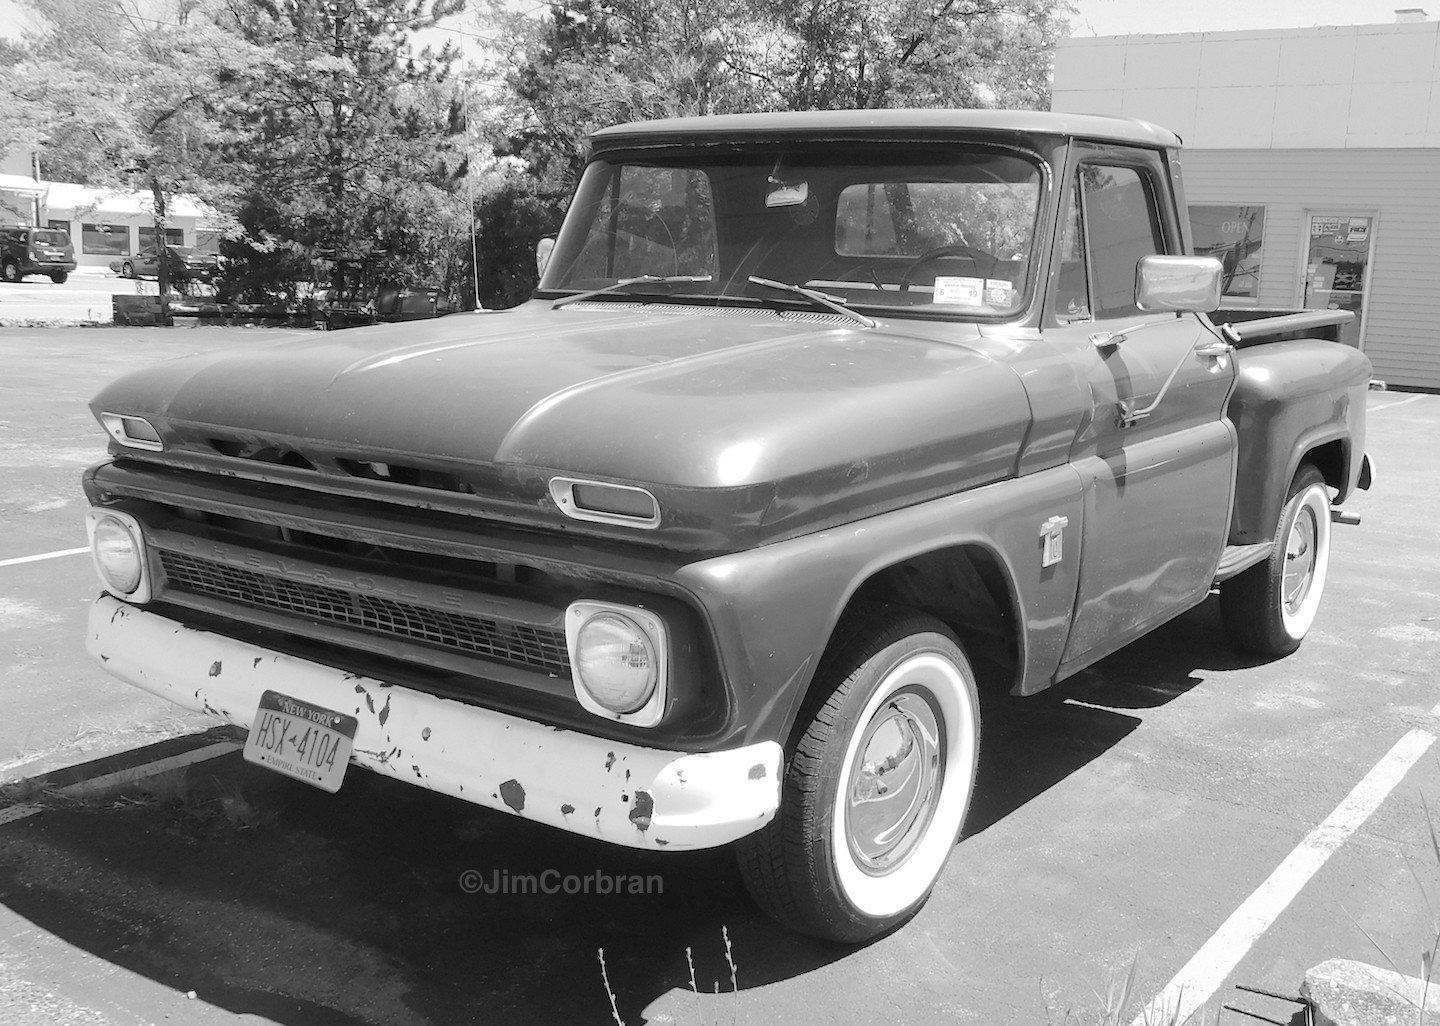 All Chevy chevy c-10 : of WNY - 1964 Chevy C-10